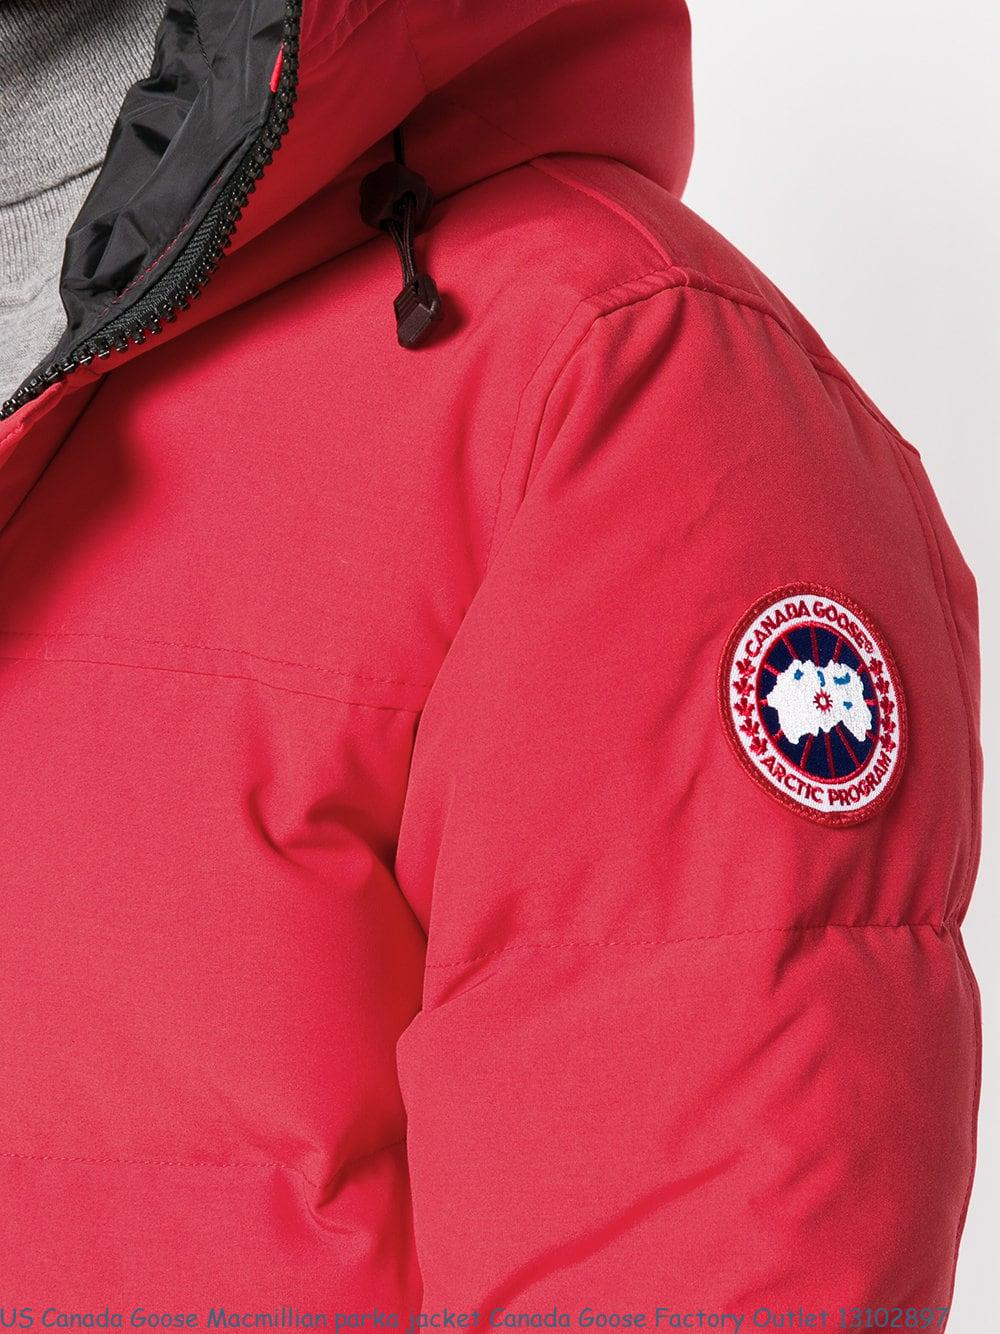 US Canada Goose Macmillian parka jacket Canada Goose Factory Outlet 13102897